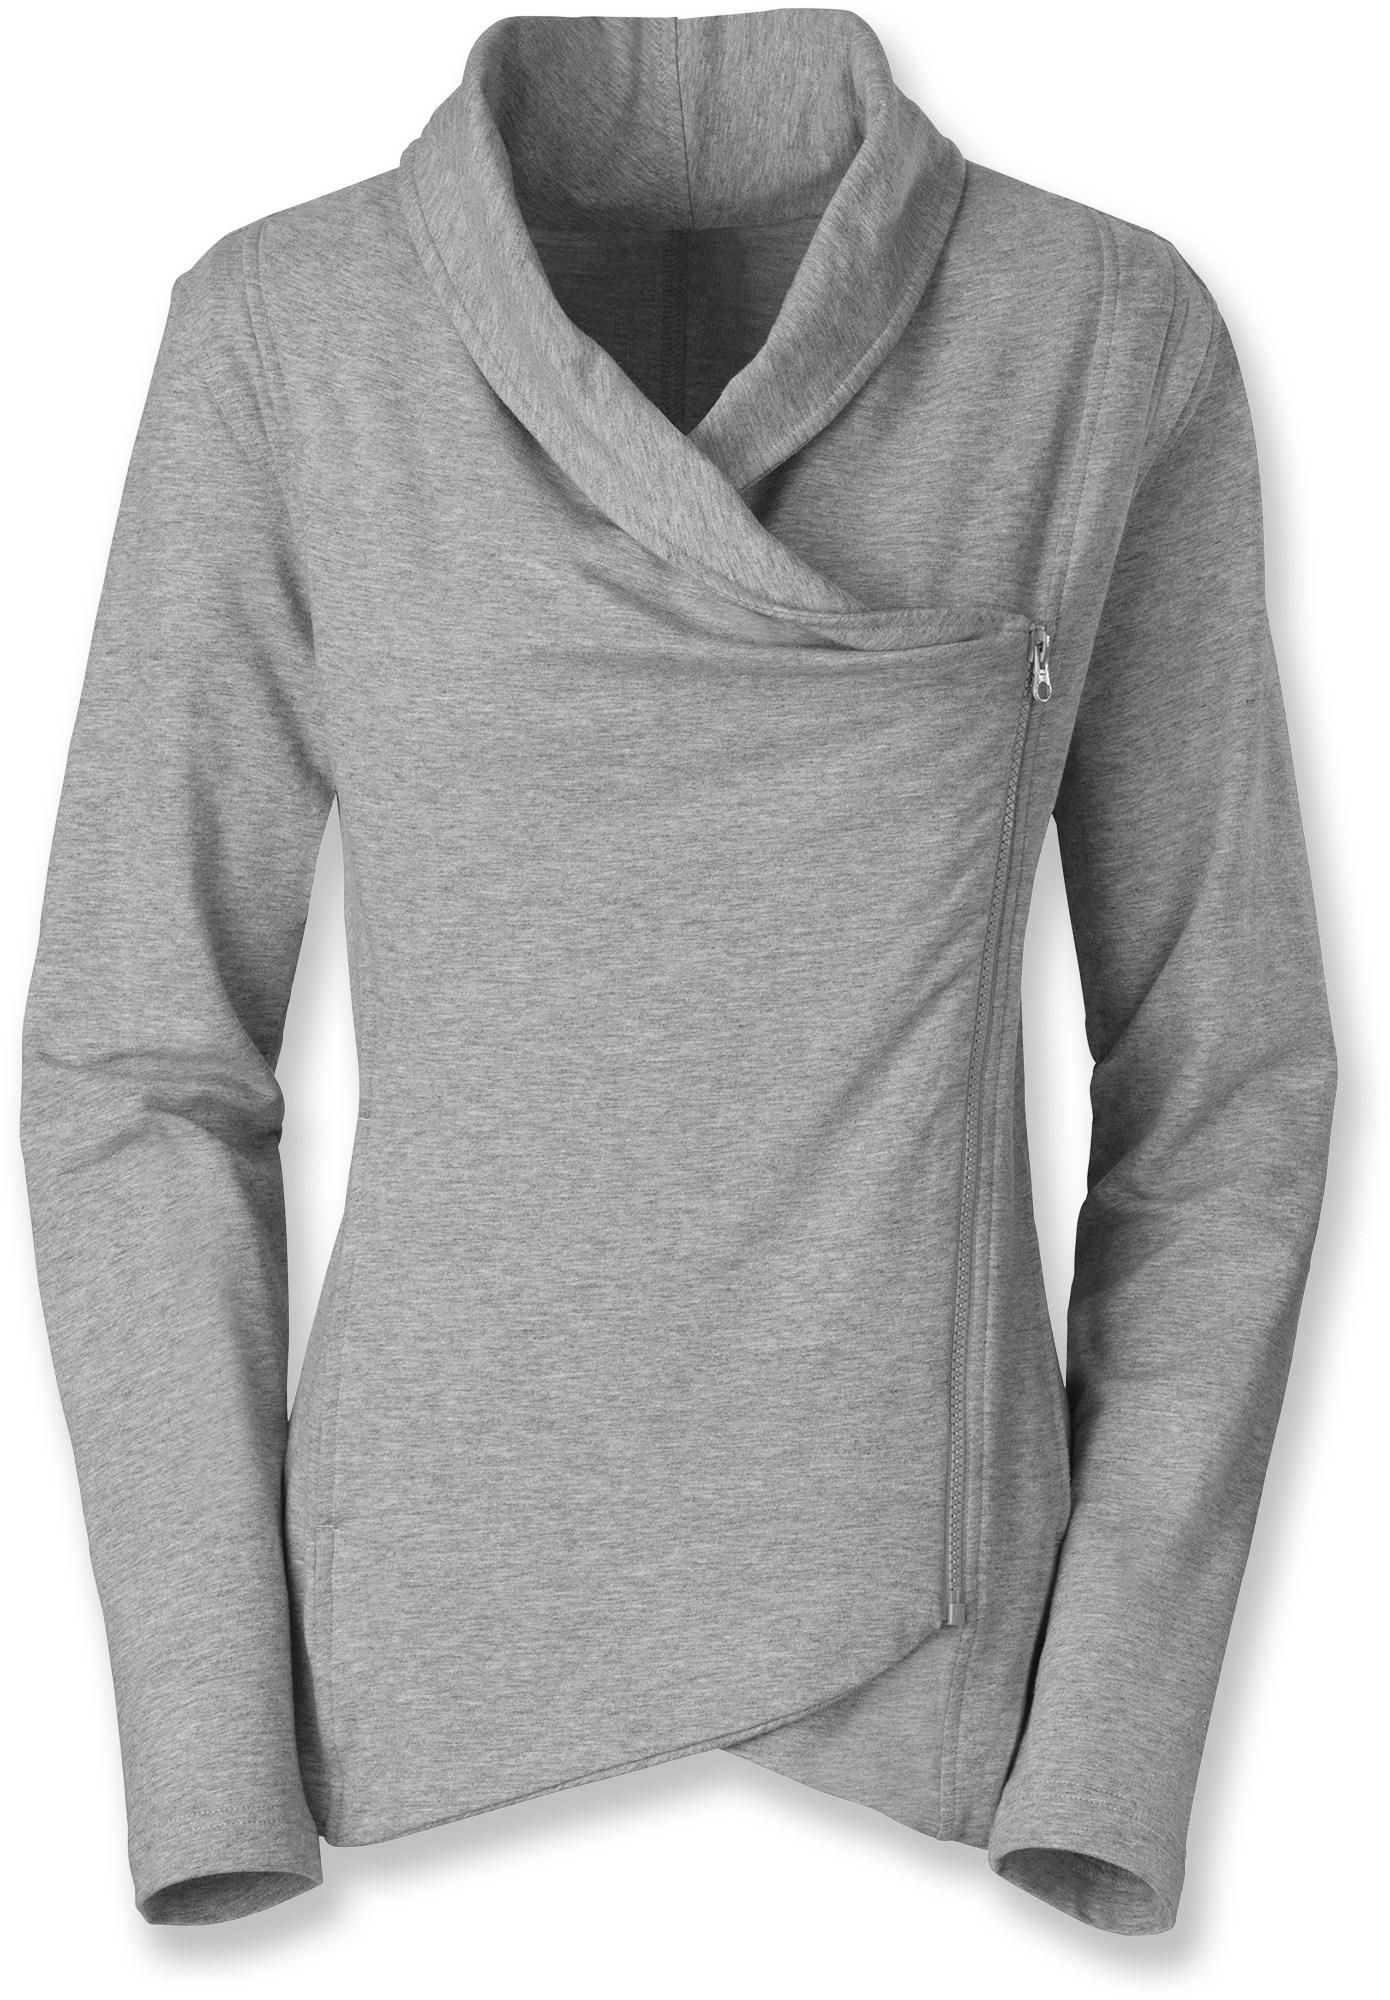 271a24e4e The North Face Sharlet Wrap Sweater - Women's | REI Co-op | Travel ...